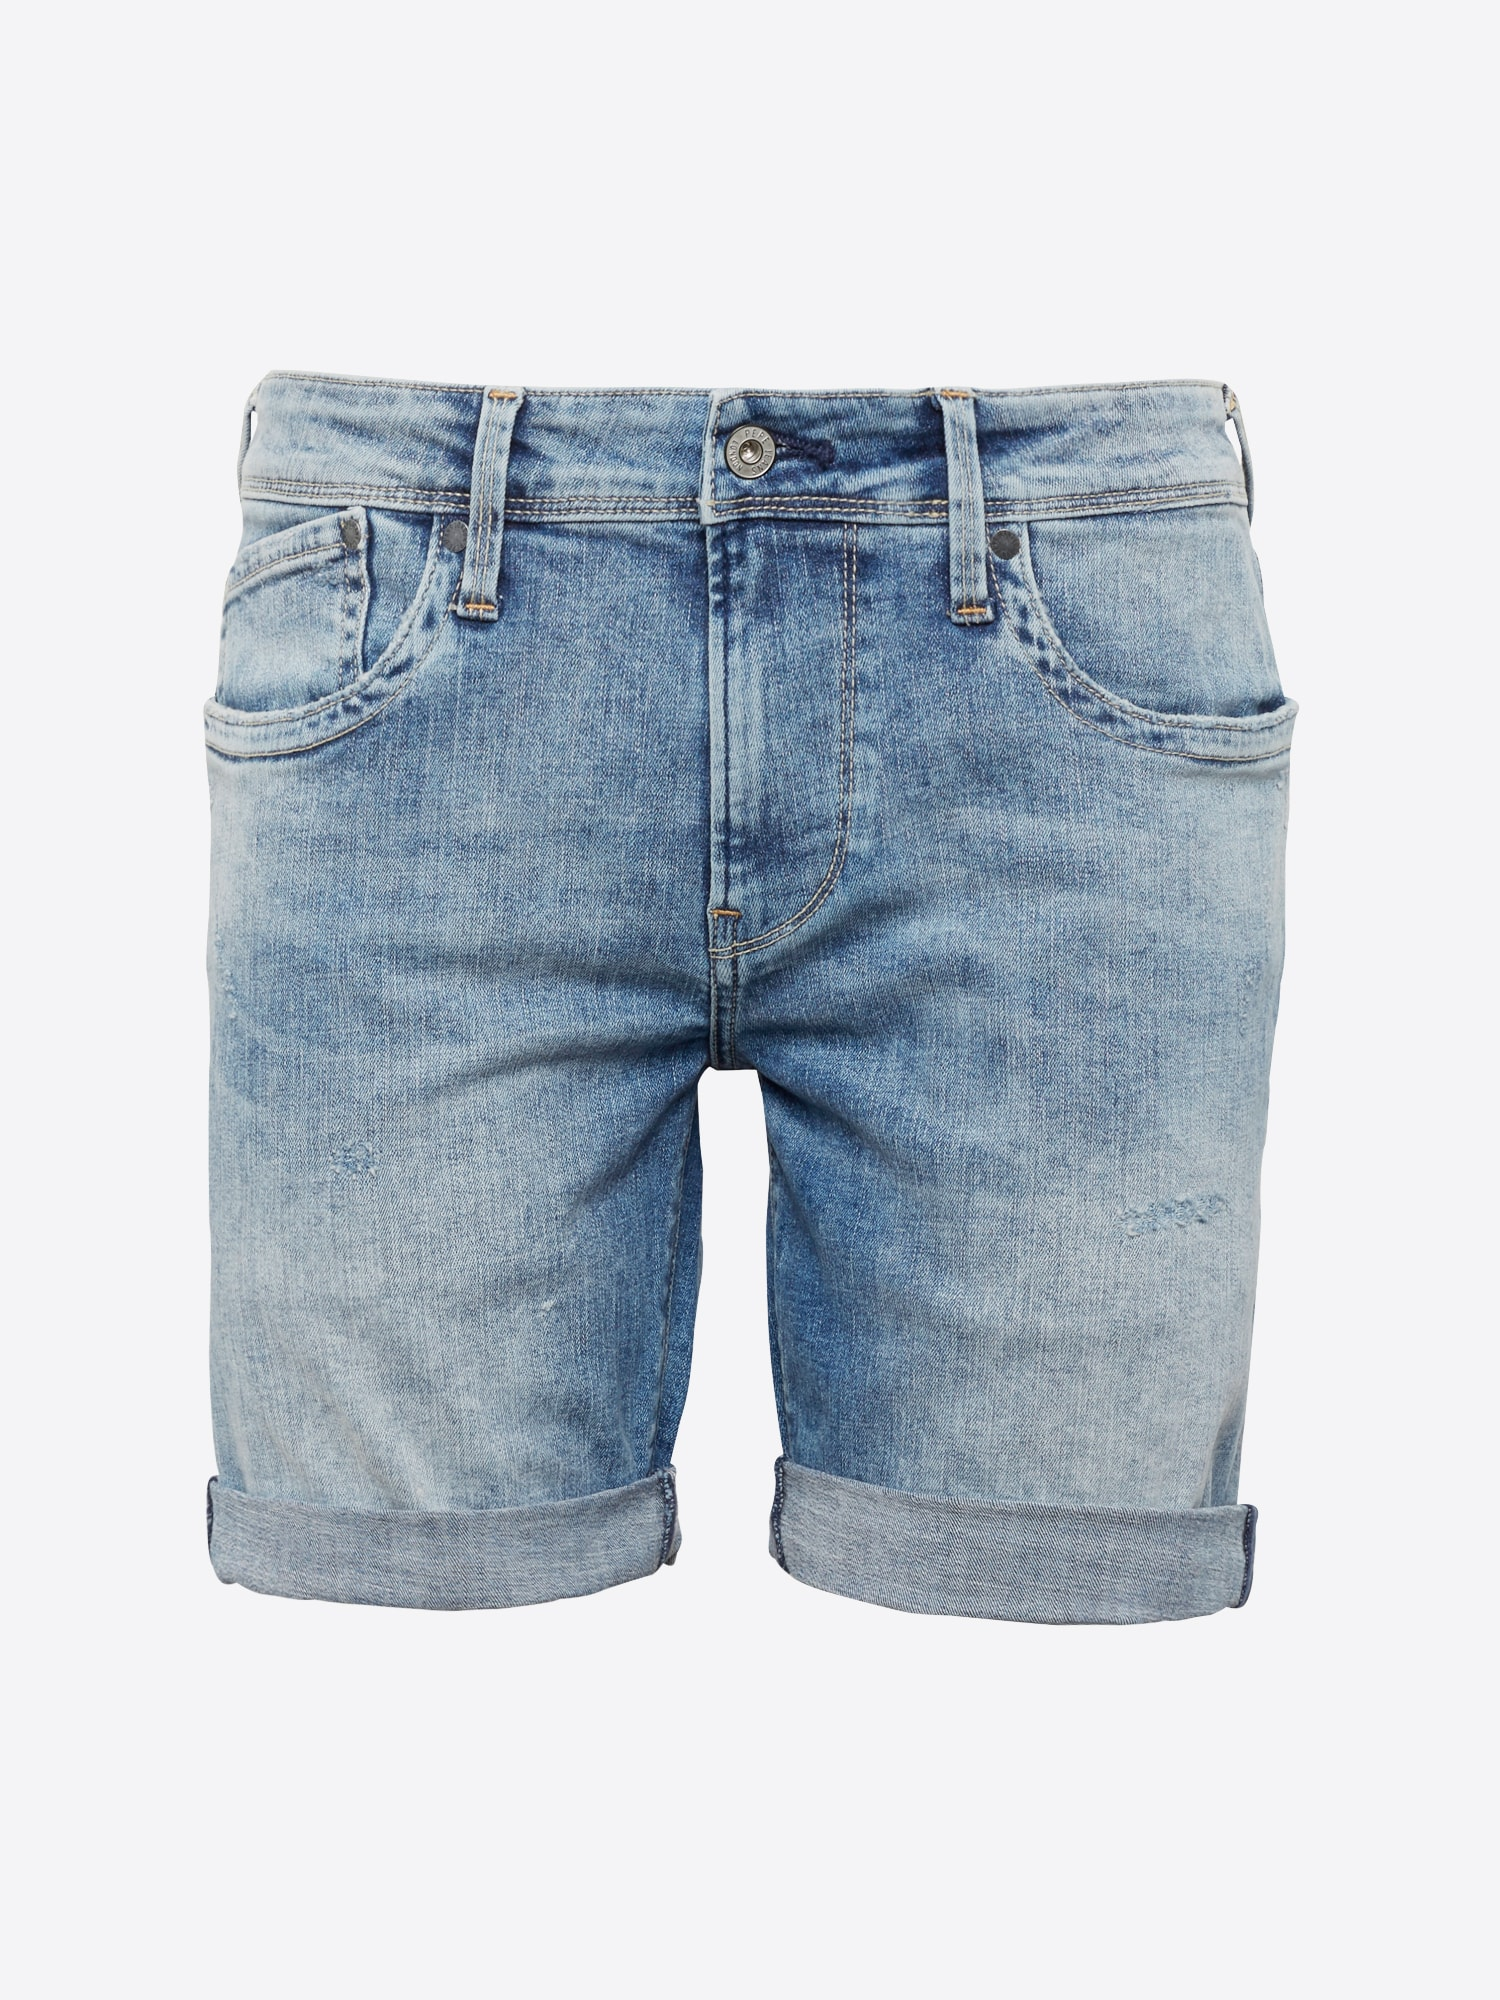 Pepe Jeans, Herren Jeans HATCH SHORT, blauw denim